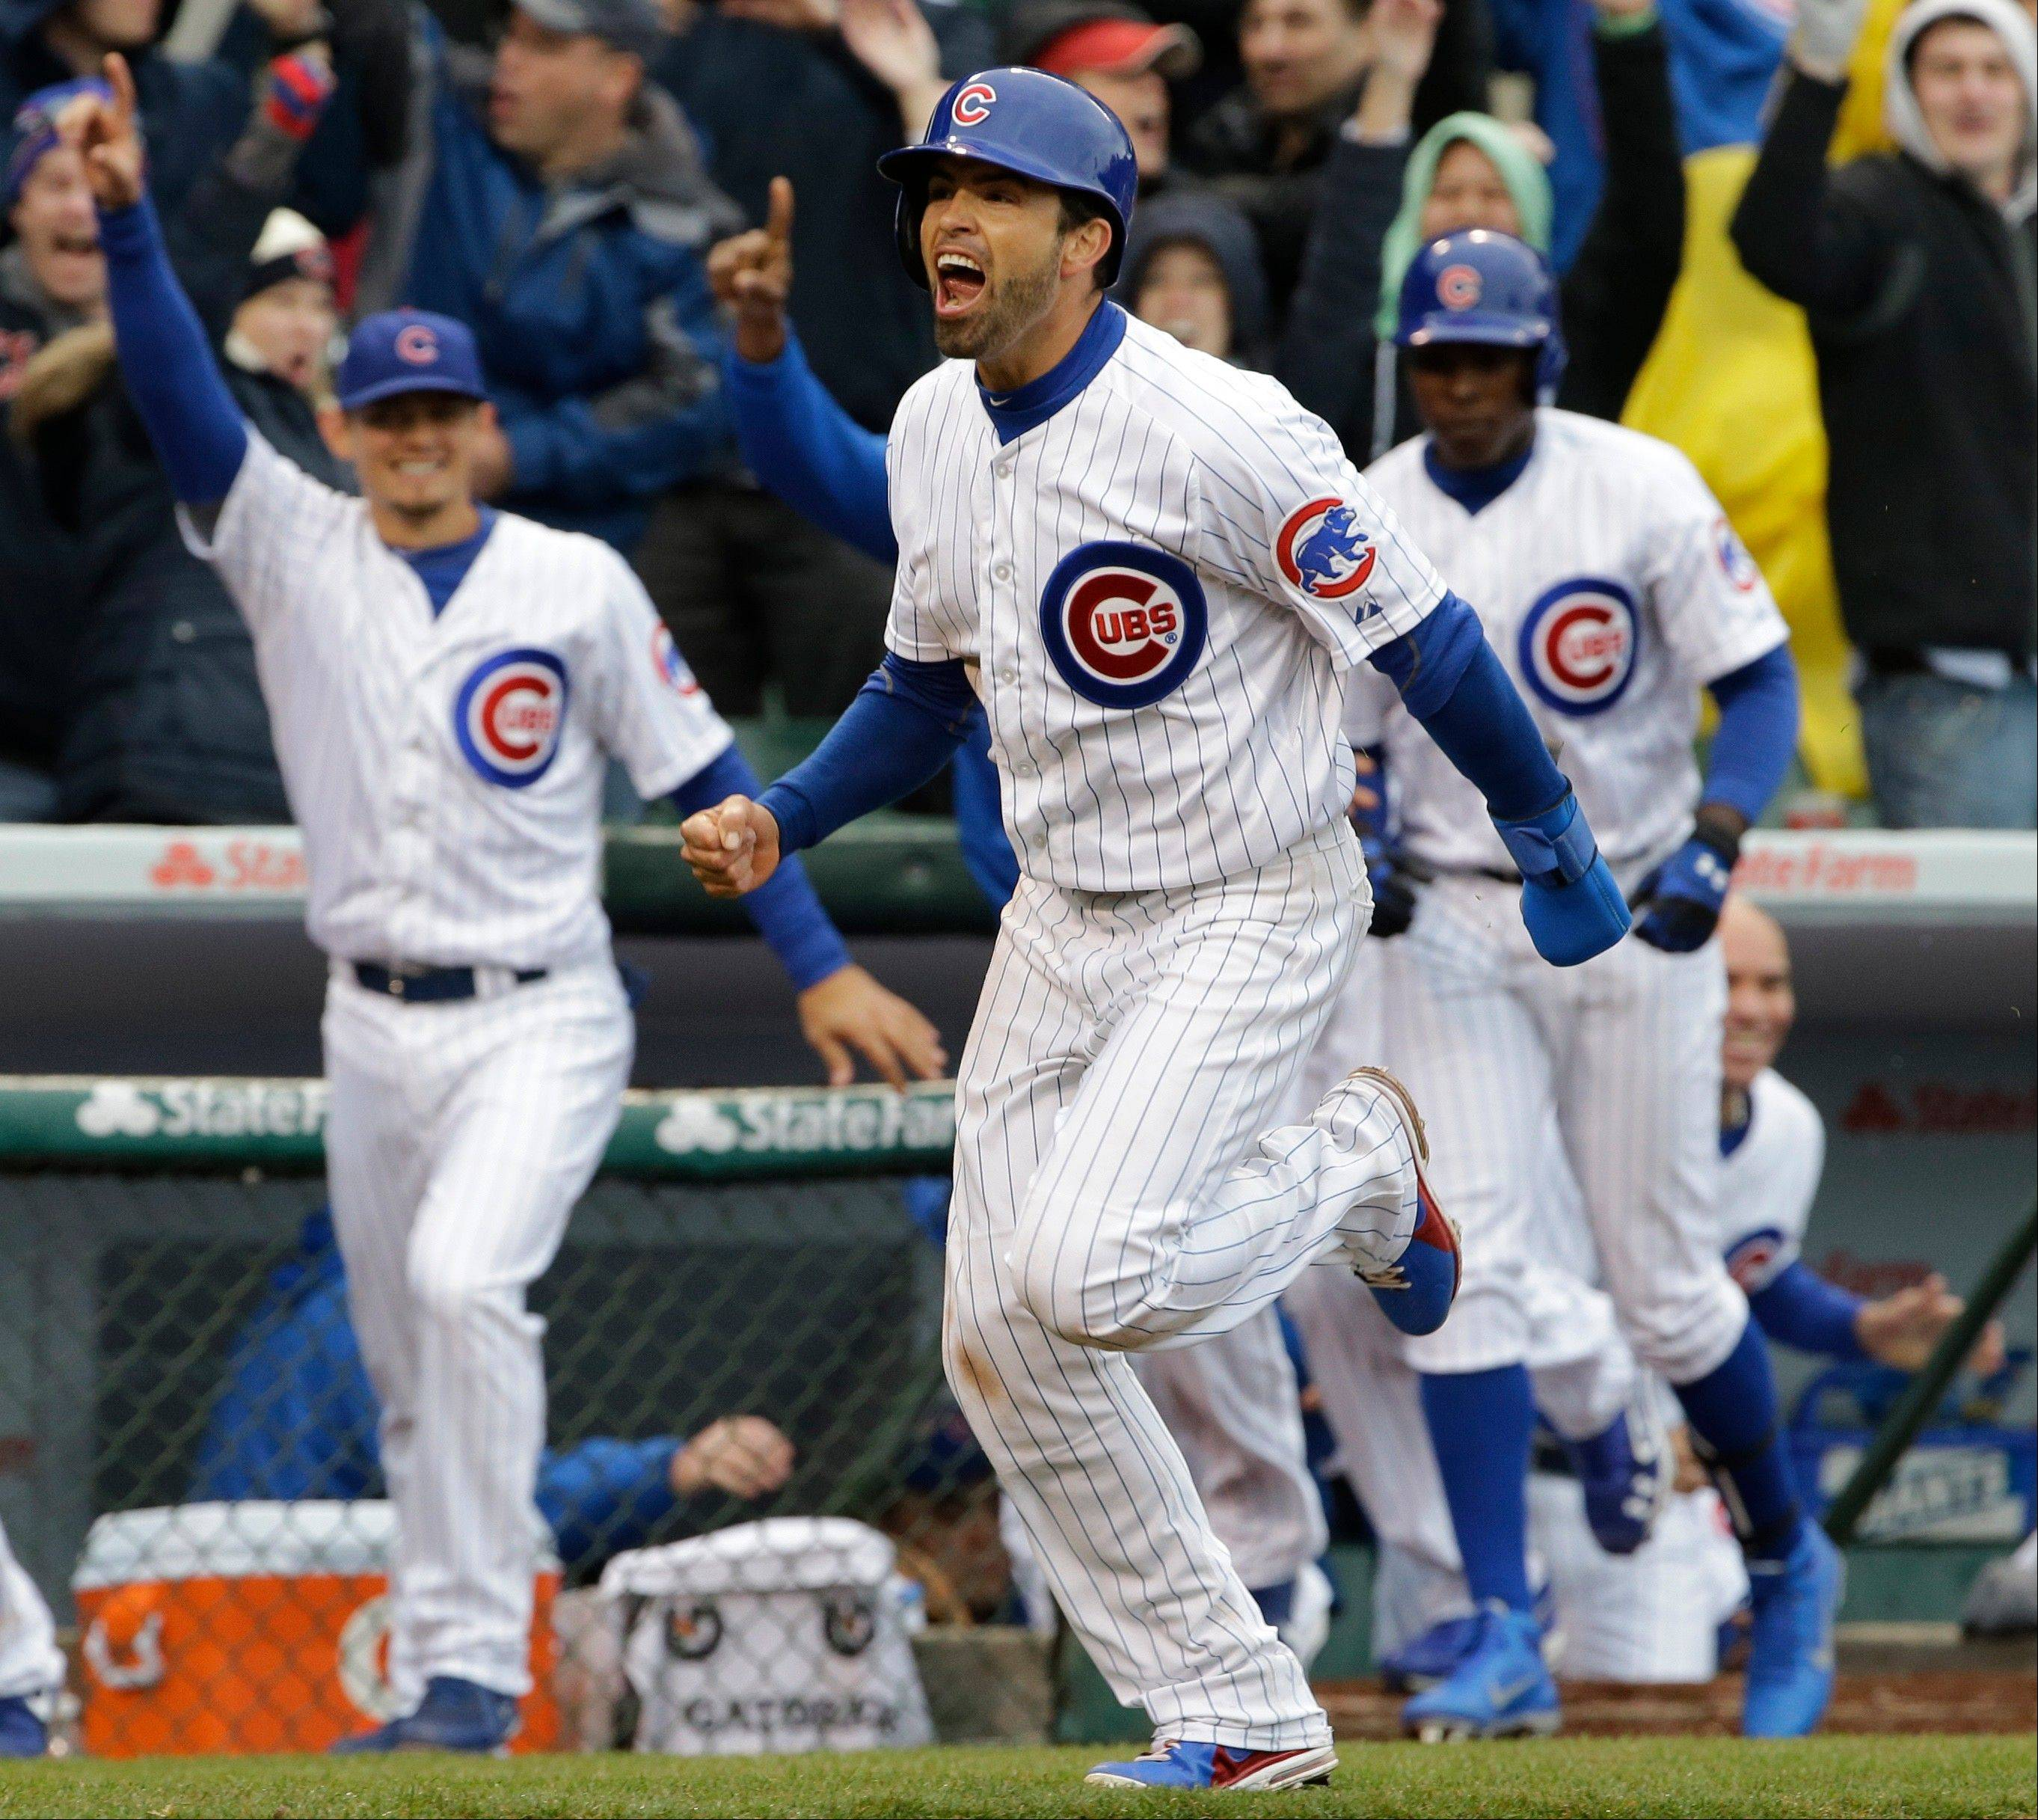 The Cubs' David DeJesus, foreground, celebrates as he runs to home after Starlin Castro hit the game-winning double against the Giants in the ninth inning Friday at Wrigley Field.